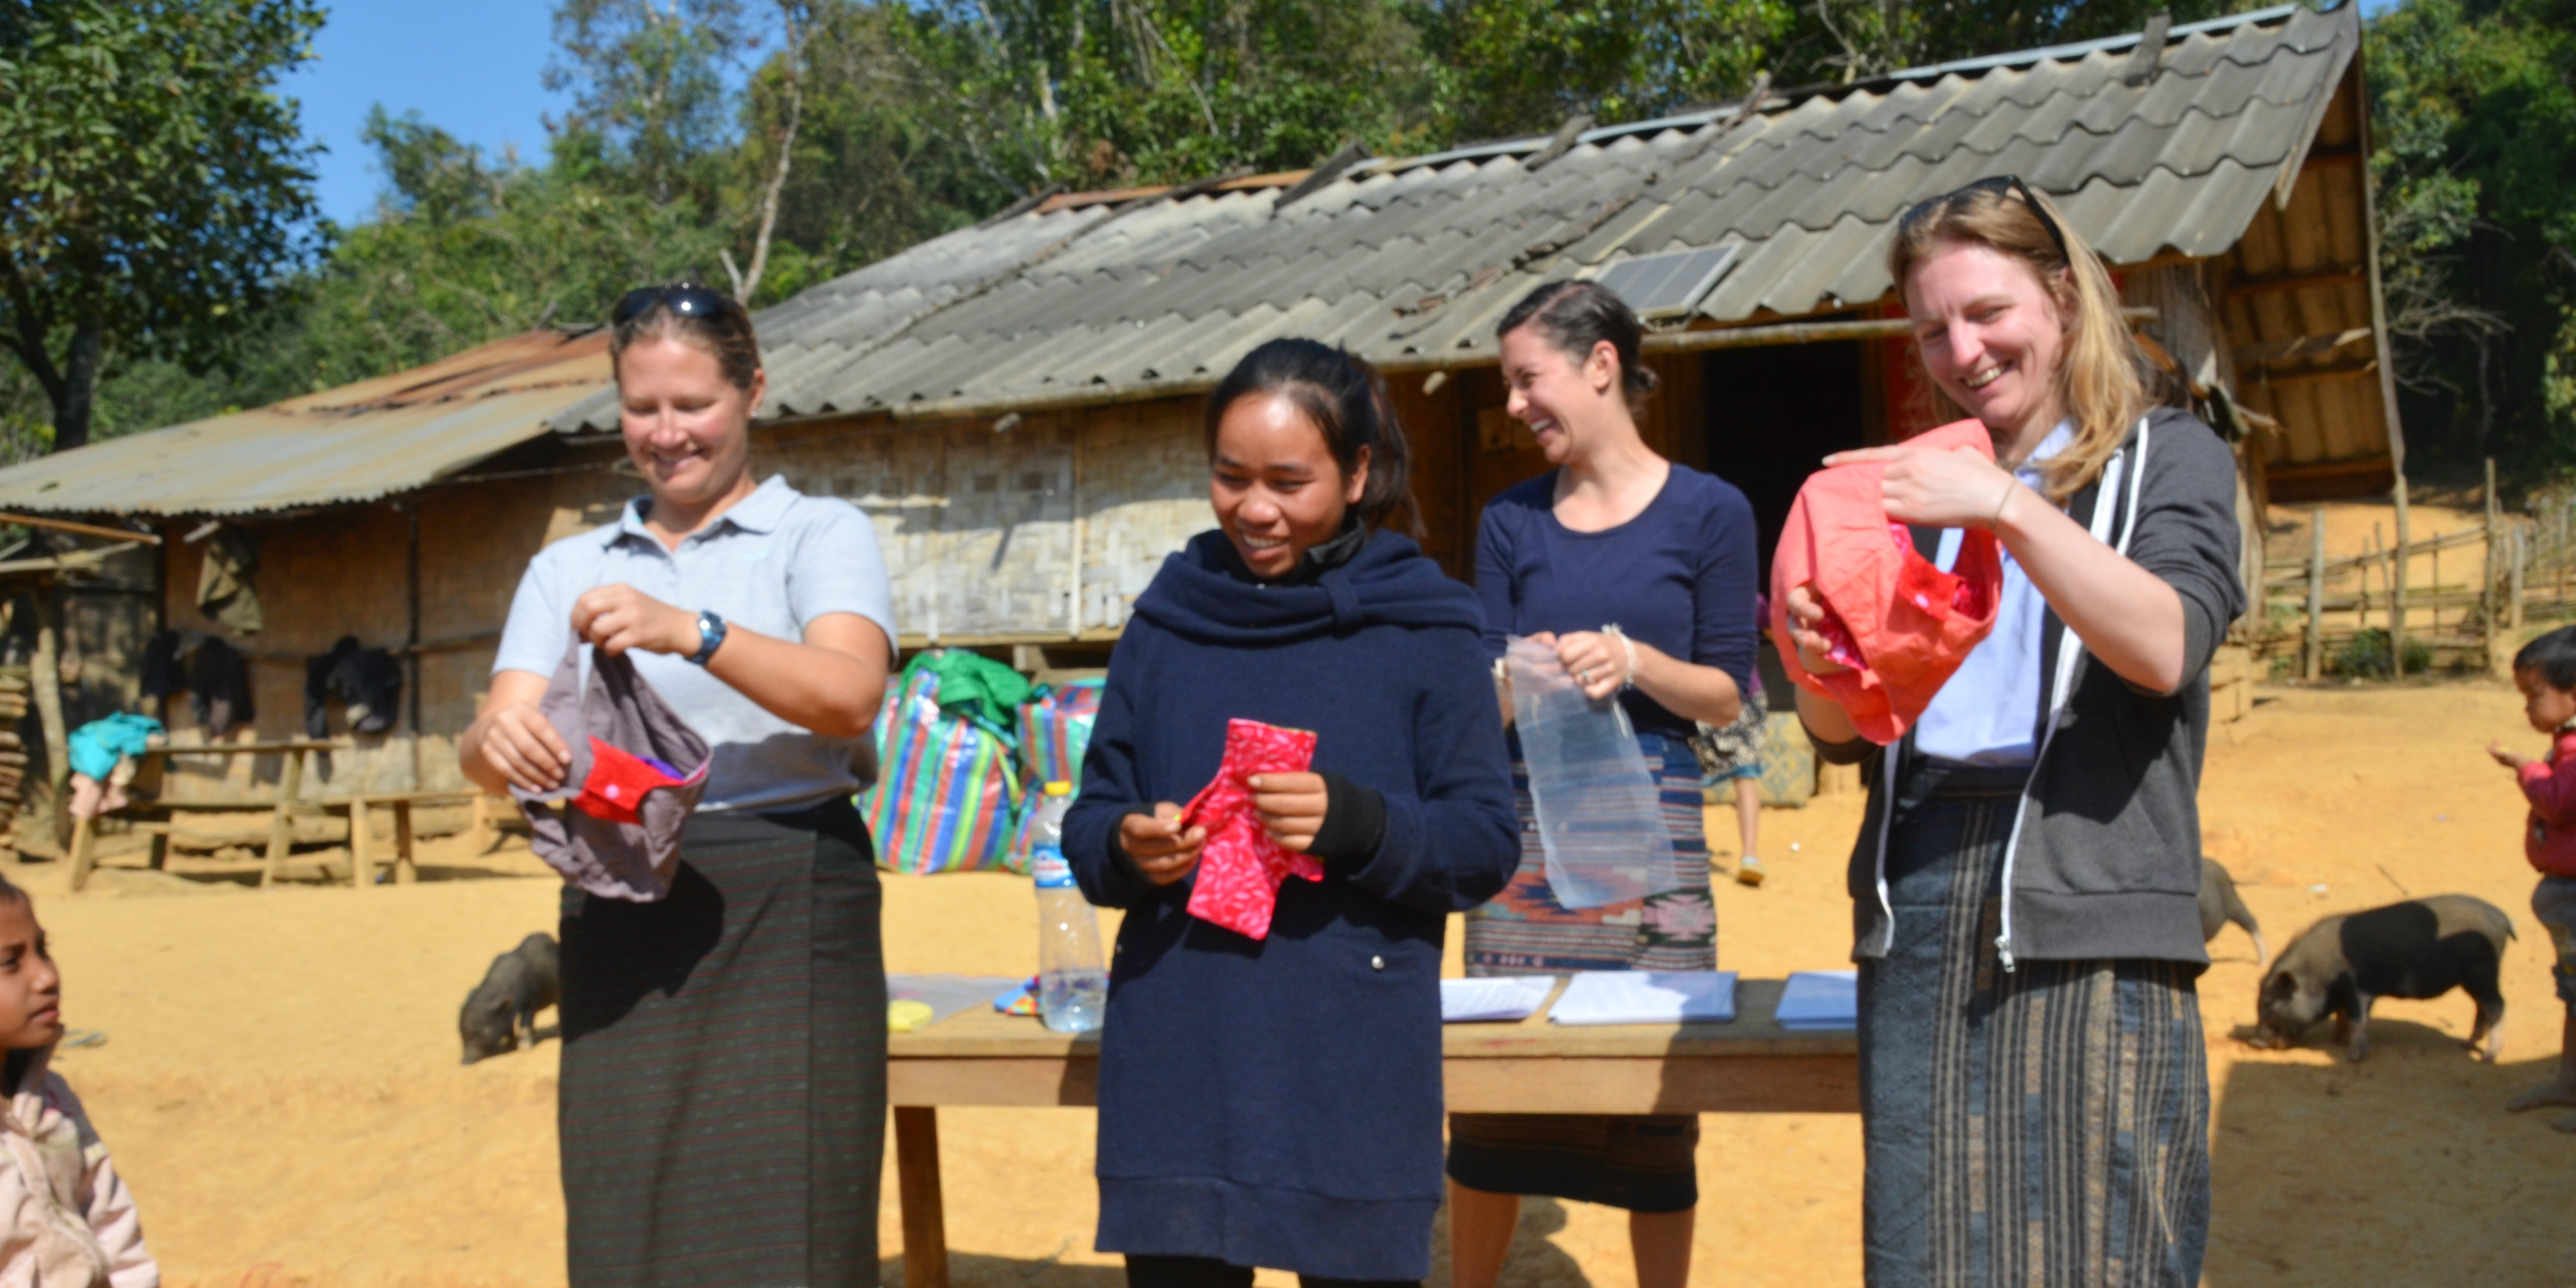 GVI staff demonstrate how the Days for Girls menstrual health kits are used.